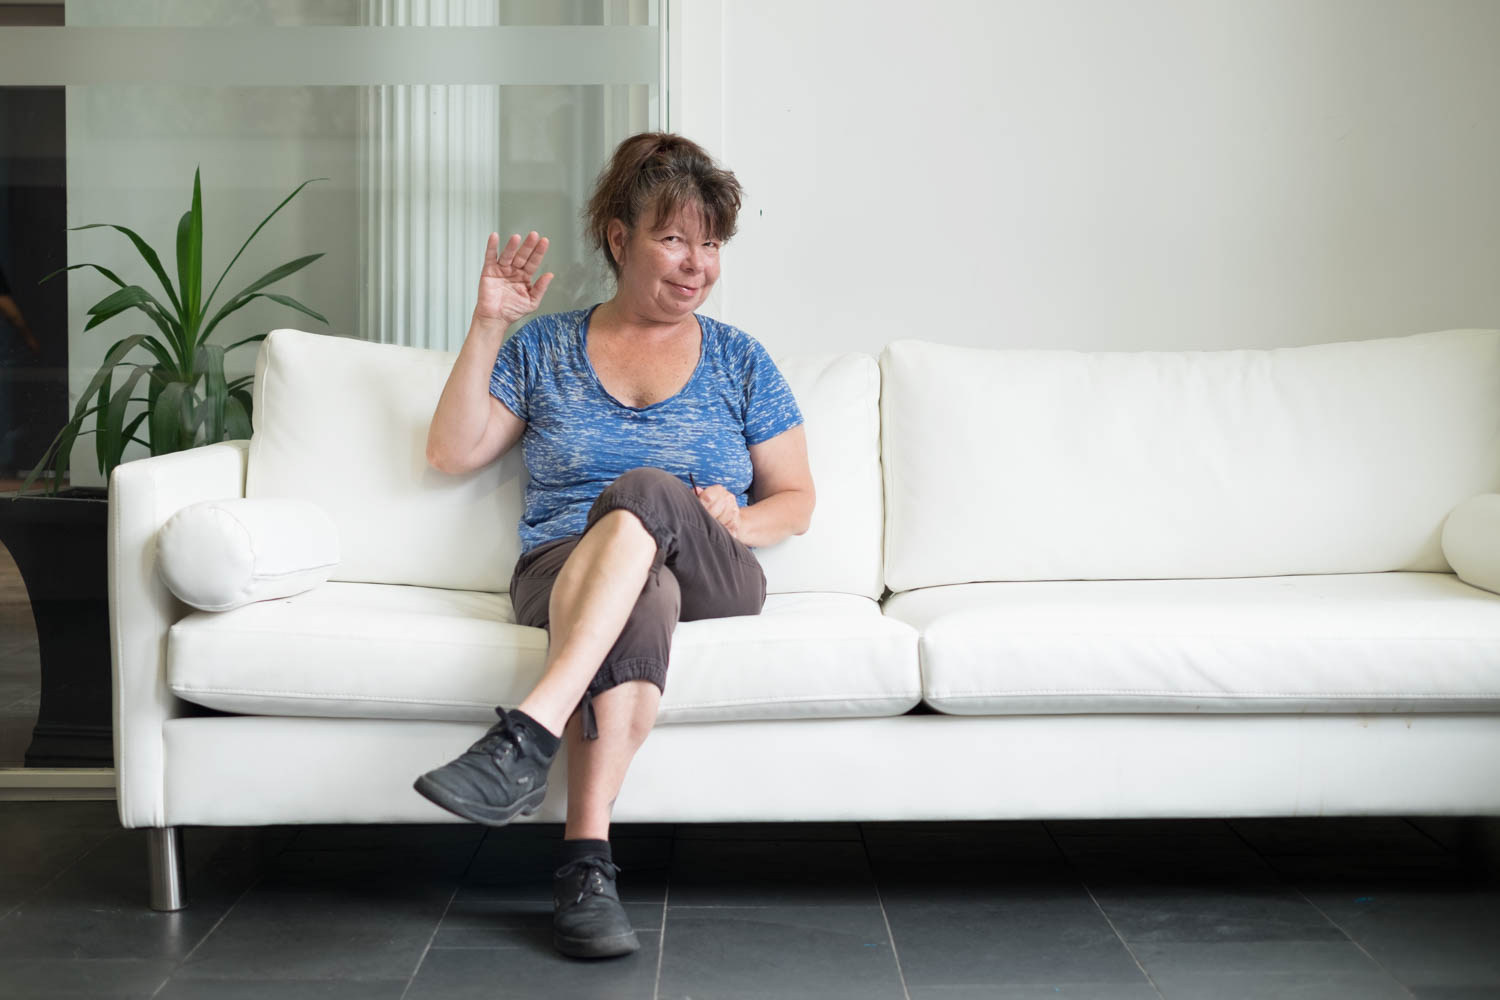 Colleen wearing a blue T-shirt, brown capris, and black laced shoes sitting on a white couch and waving to the camera. Colleen has their hair in a pony tail  and there is a white pillar and a potted plant in the background.